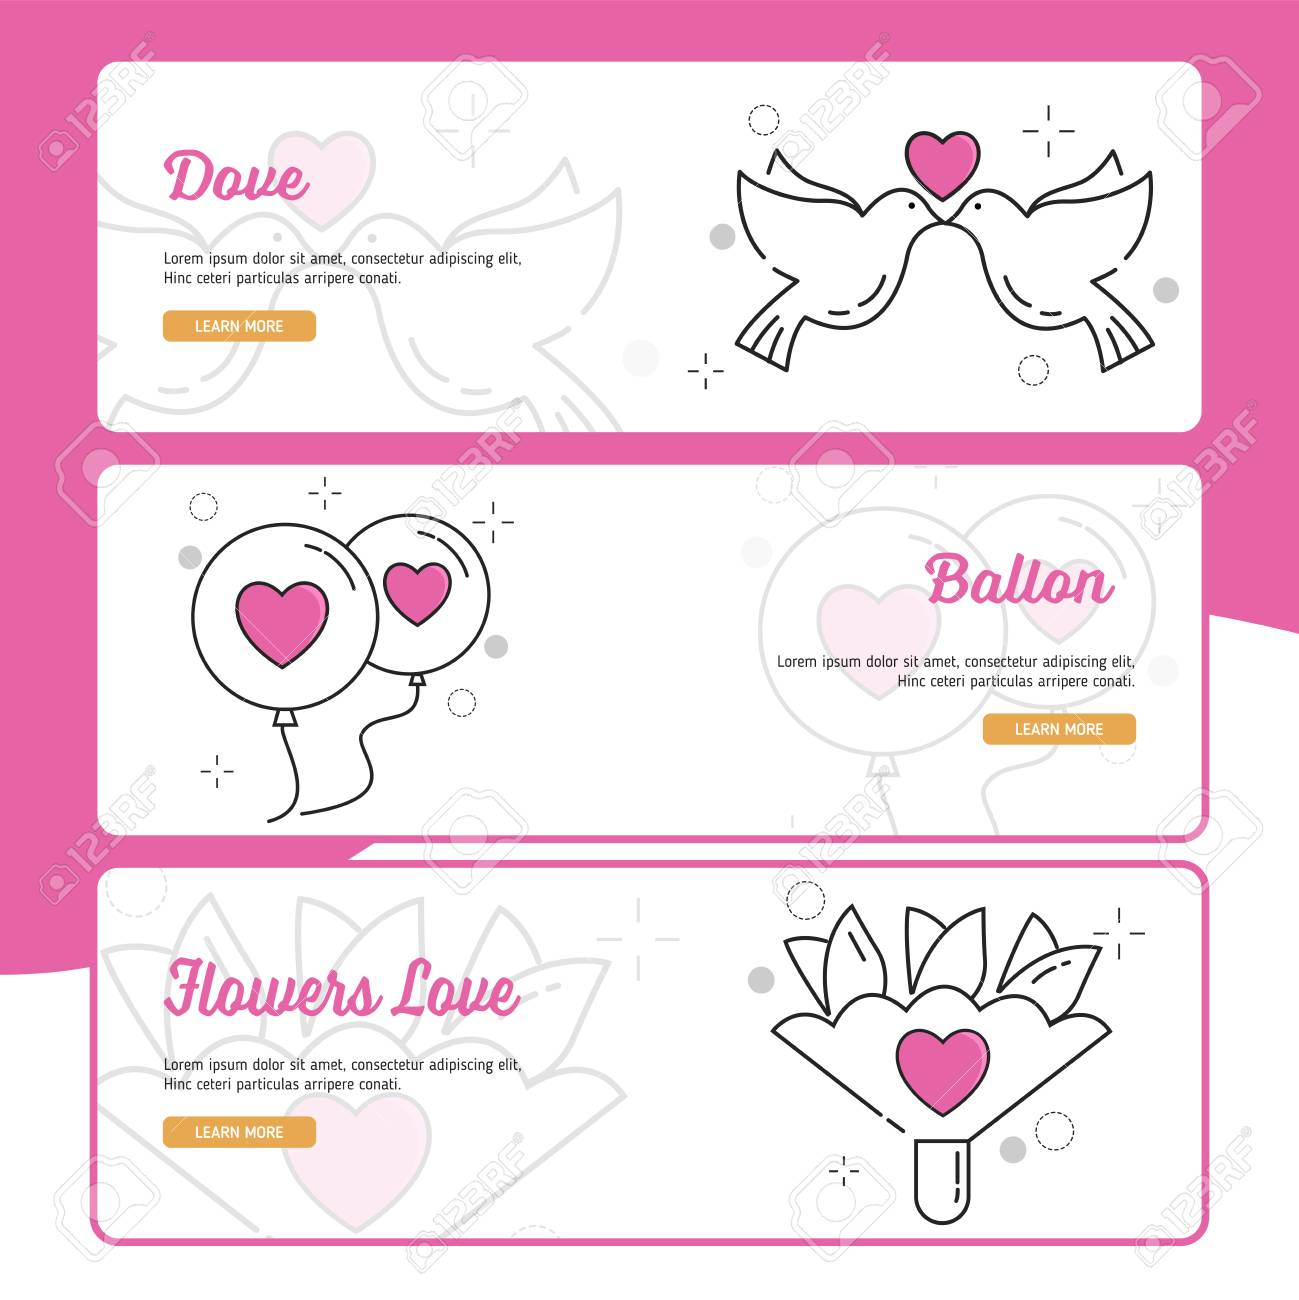 Wedding Banner Design With Outline Filled Style Royalty Free Cliparts Vectors And Stock Illustration Image 117696704